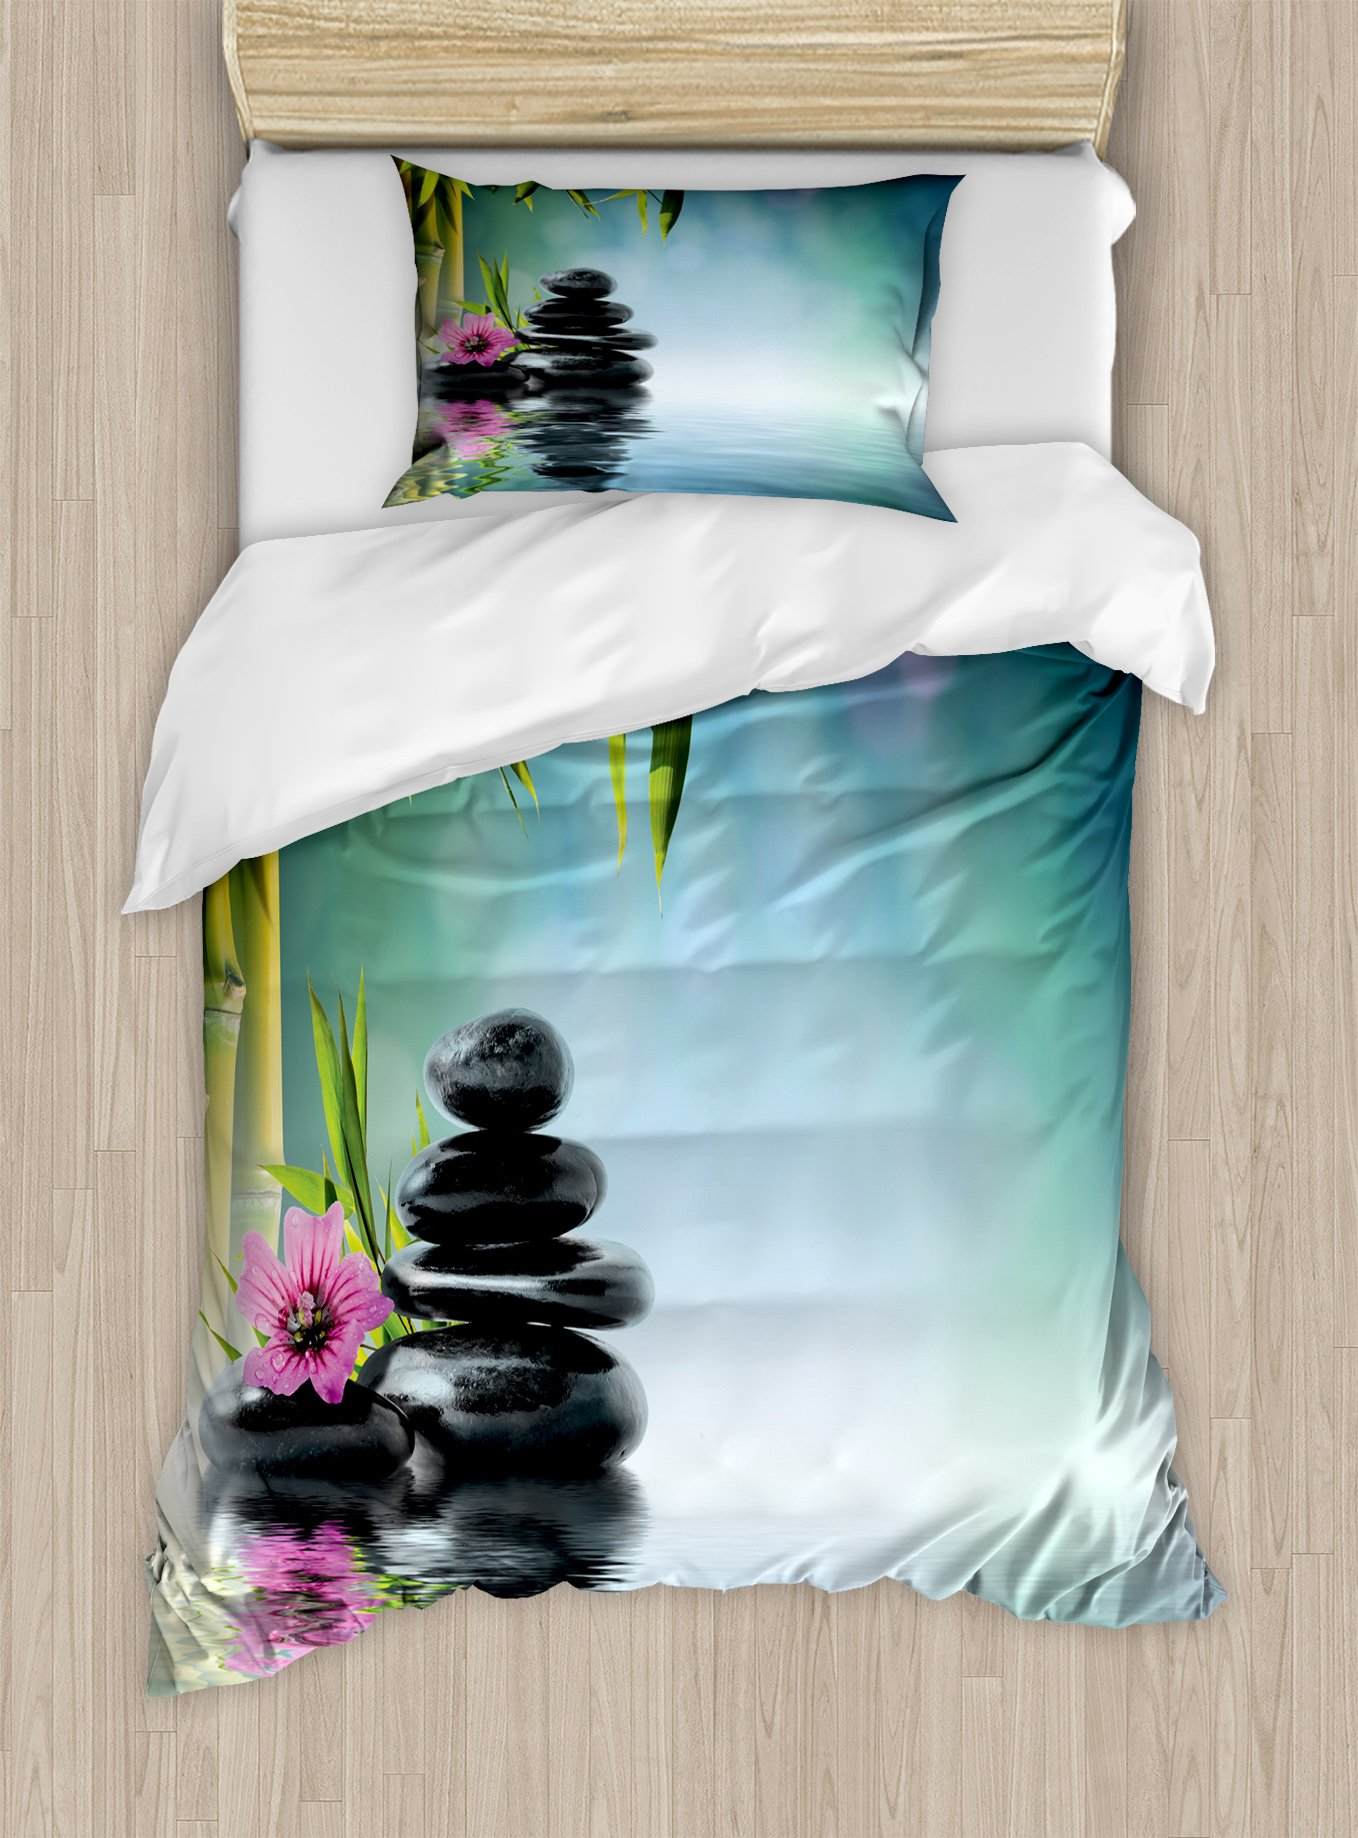 Ambesonne Zen Garden Twin Size Duvet Cover Set, Pink Flower Spa Stones and Bamboo Tree on The Water Relaxation Theraphy Peace, Decorative 2 Piece Bedding Set with 1 Pillow Sham, Multicolor